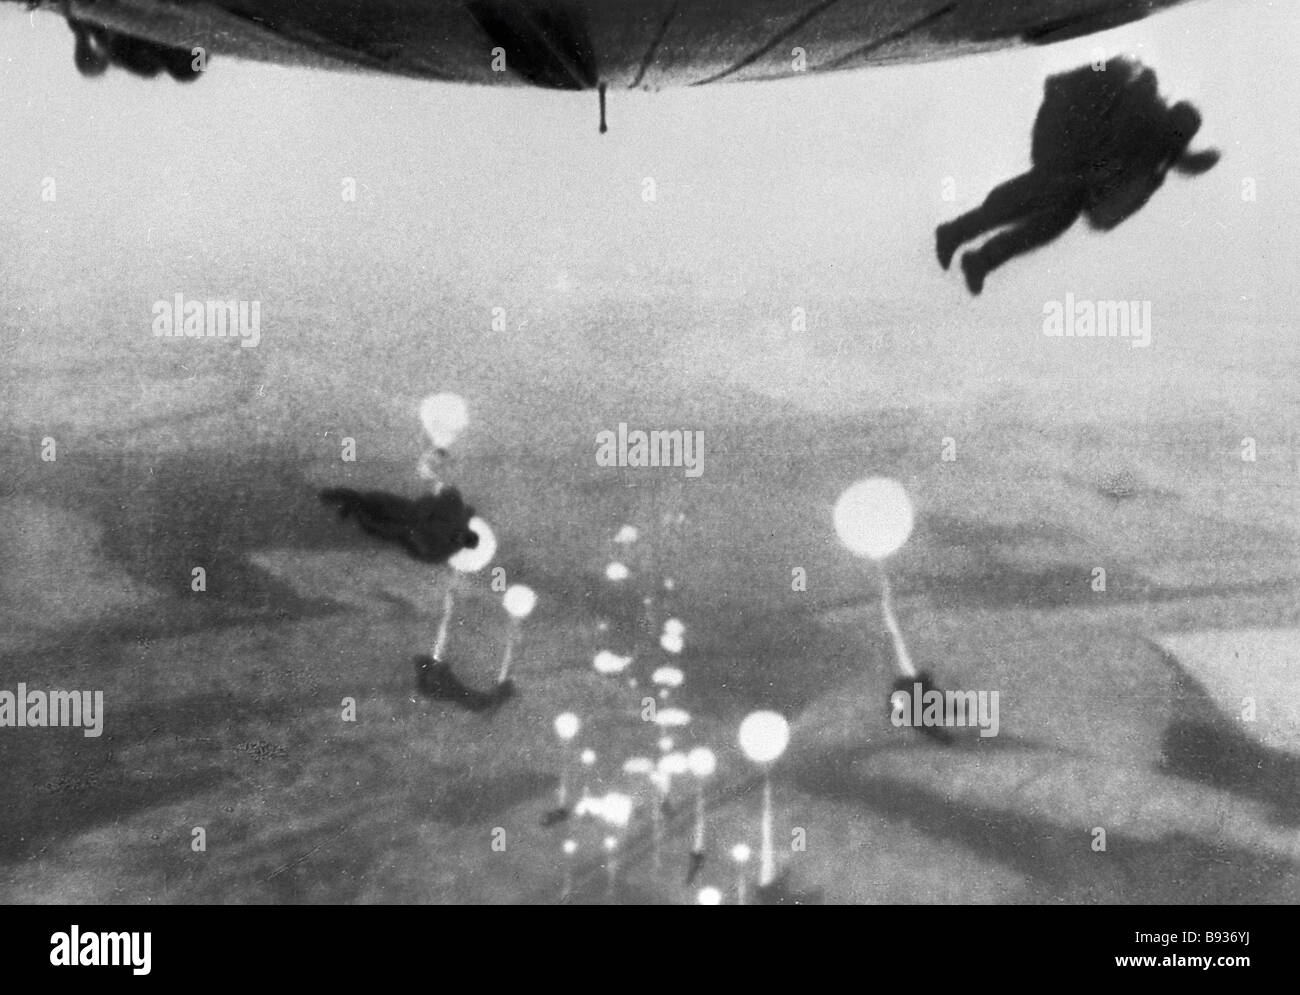 Paratroopers jump from military transport aircraft - Stock Image